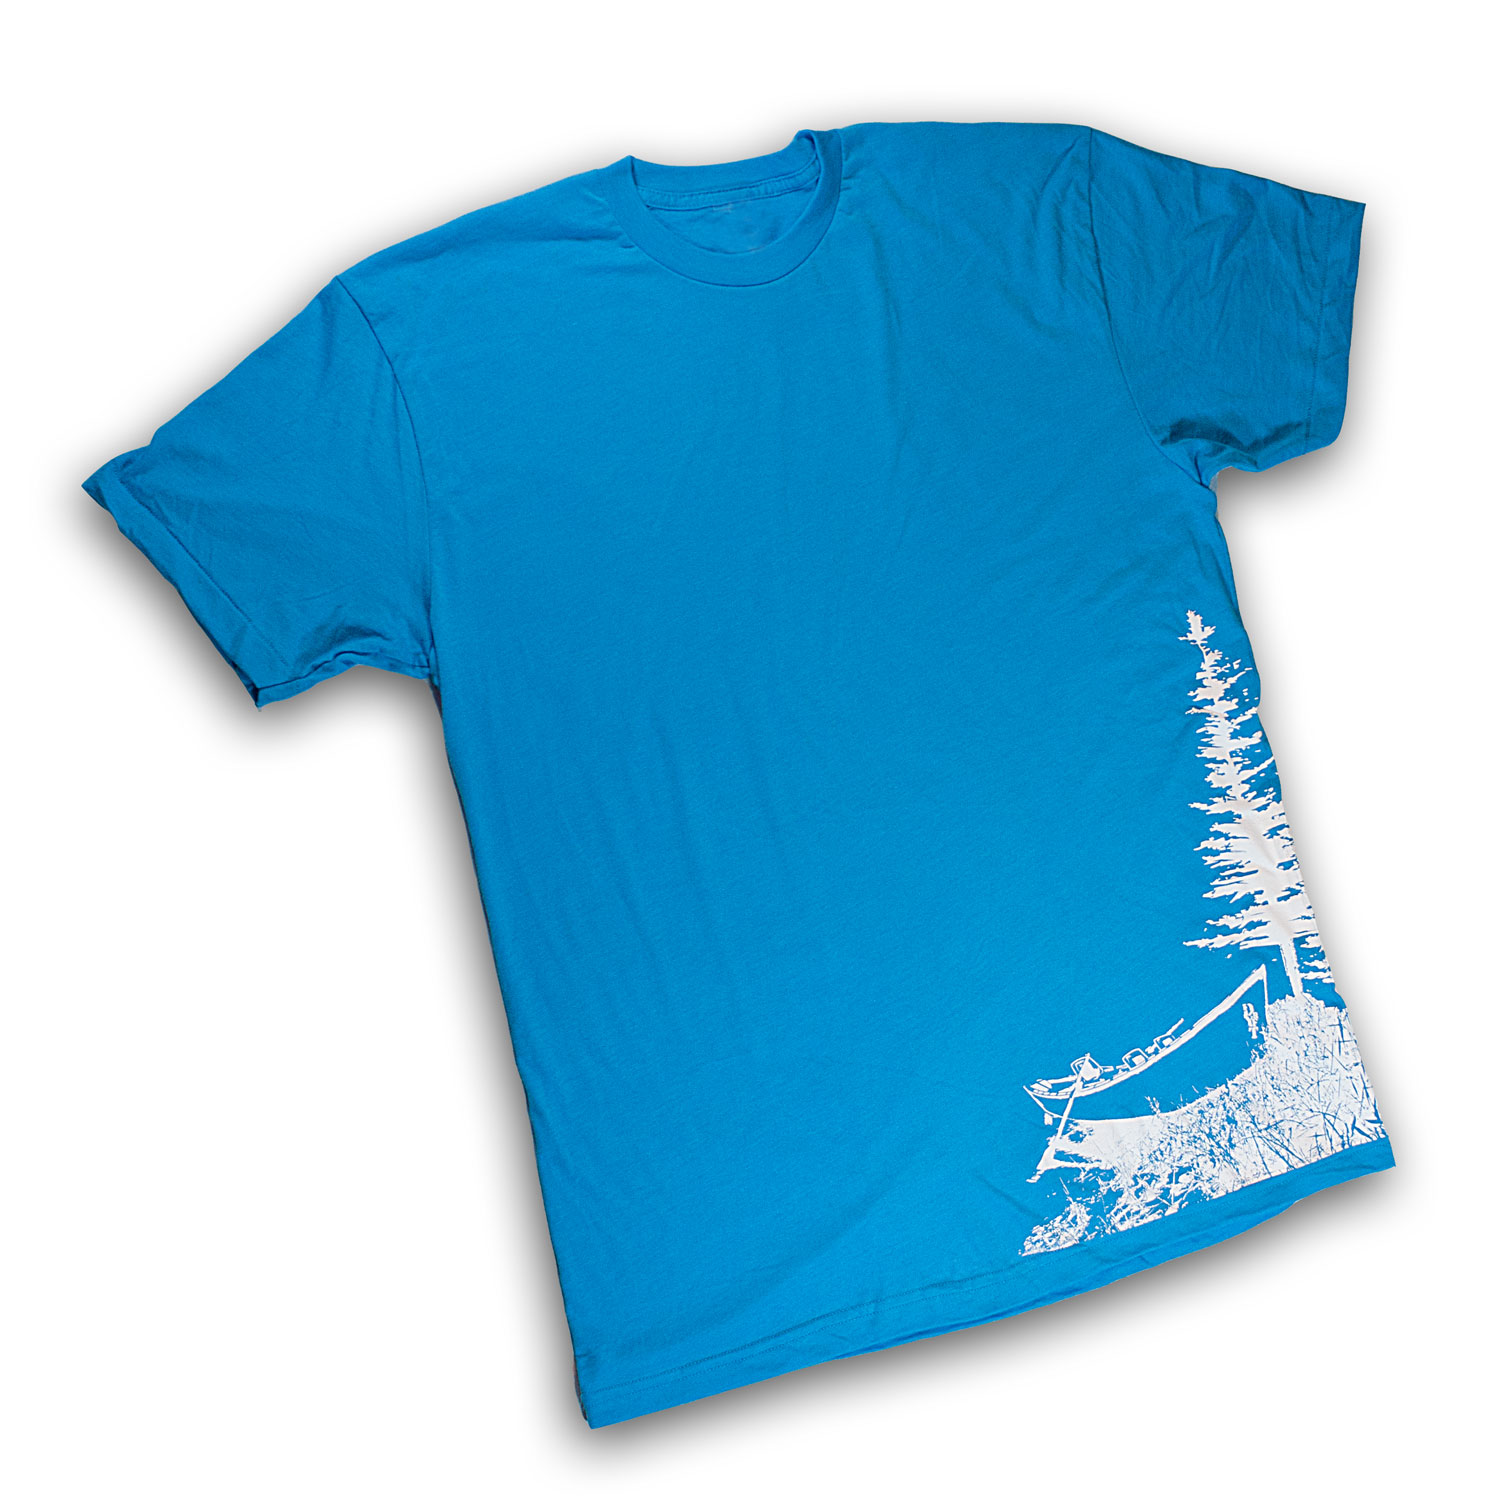 DRYFT Boat Tee Remix blue - front